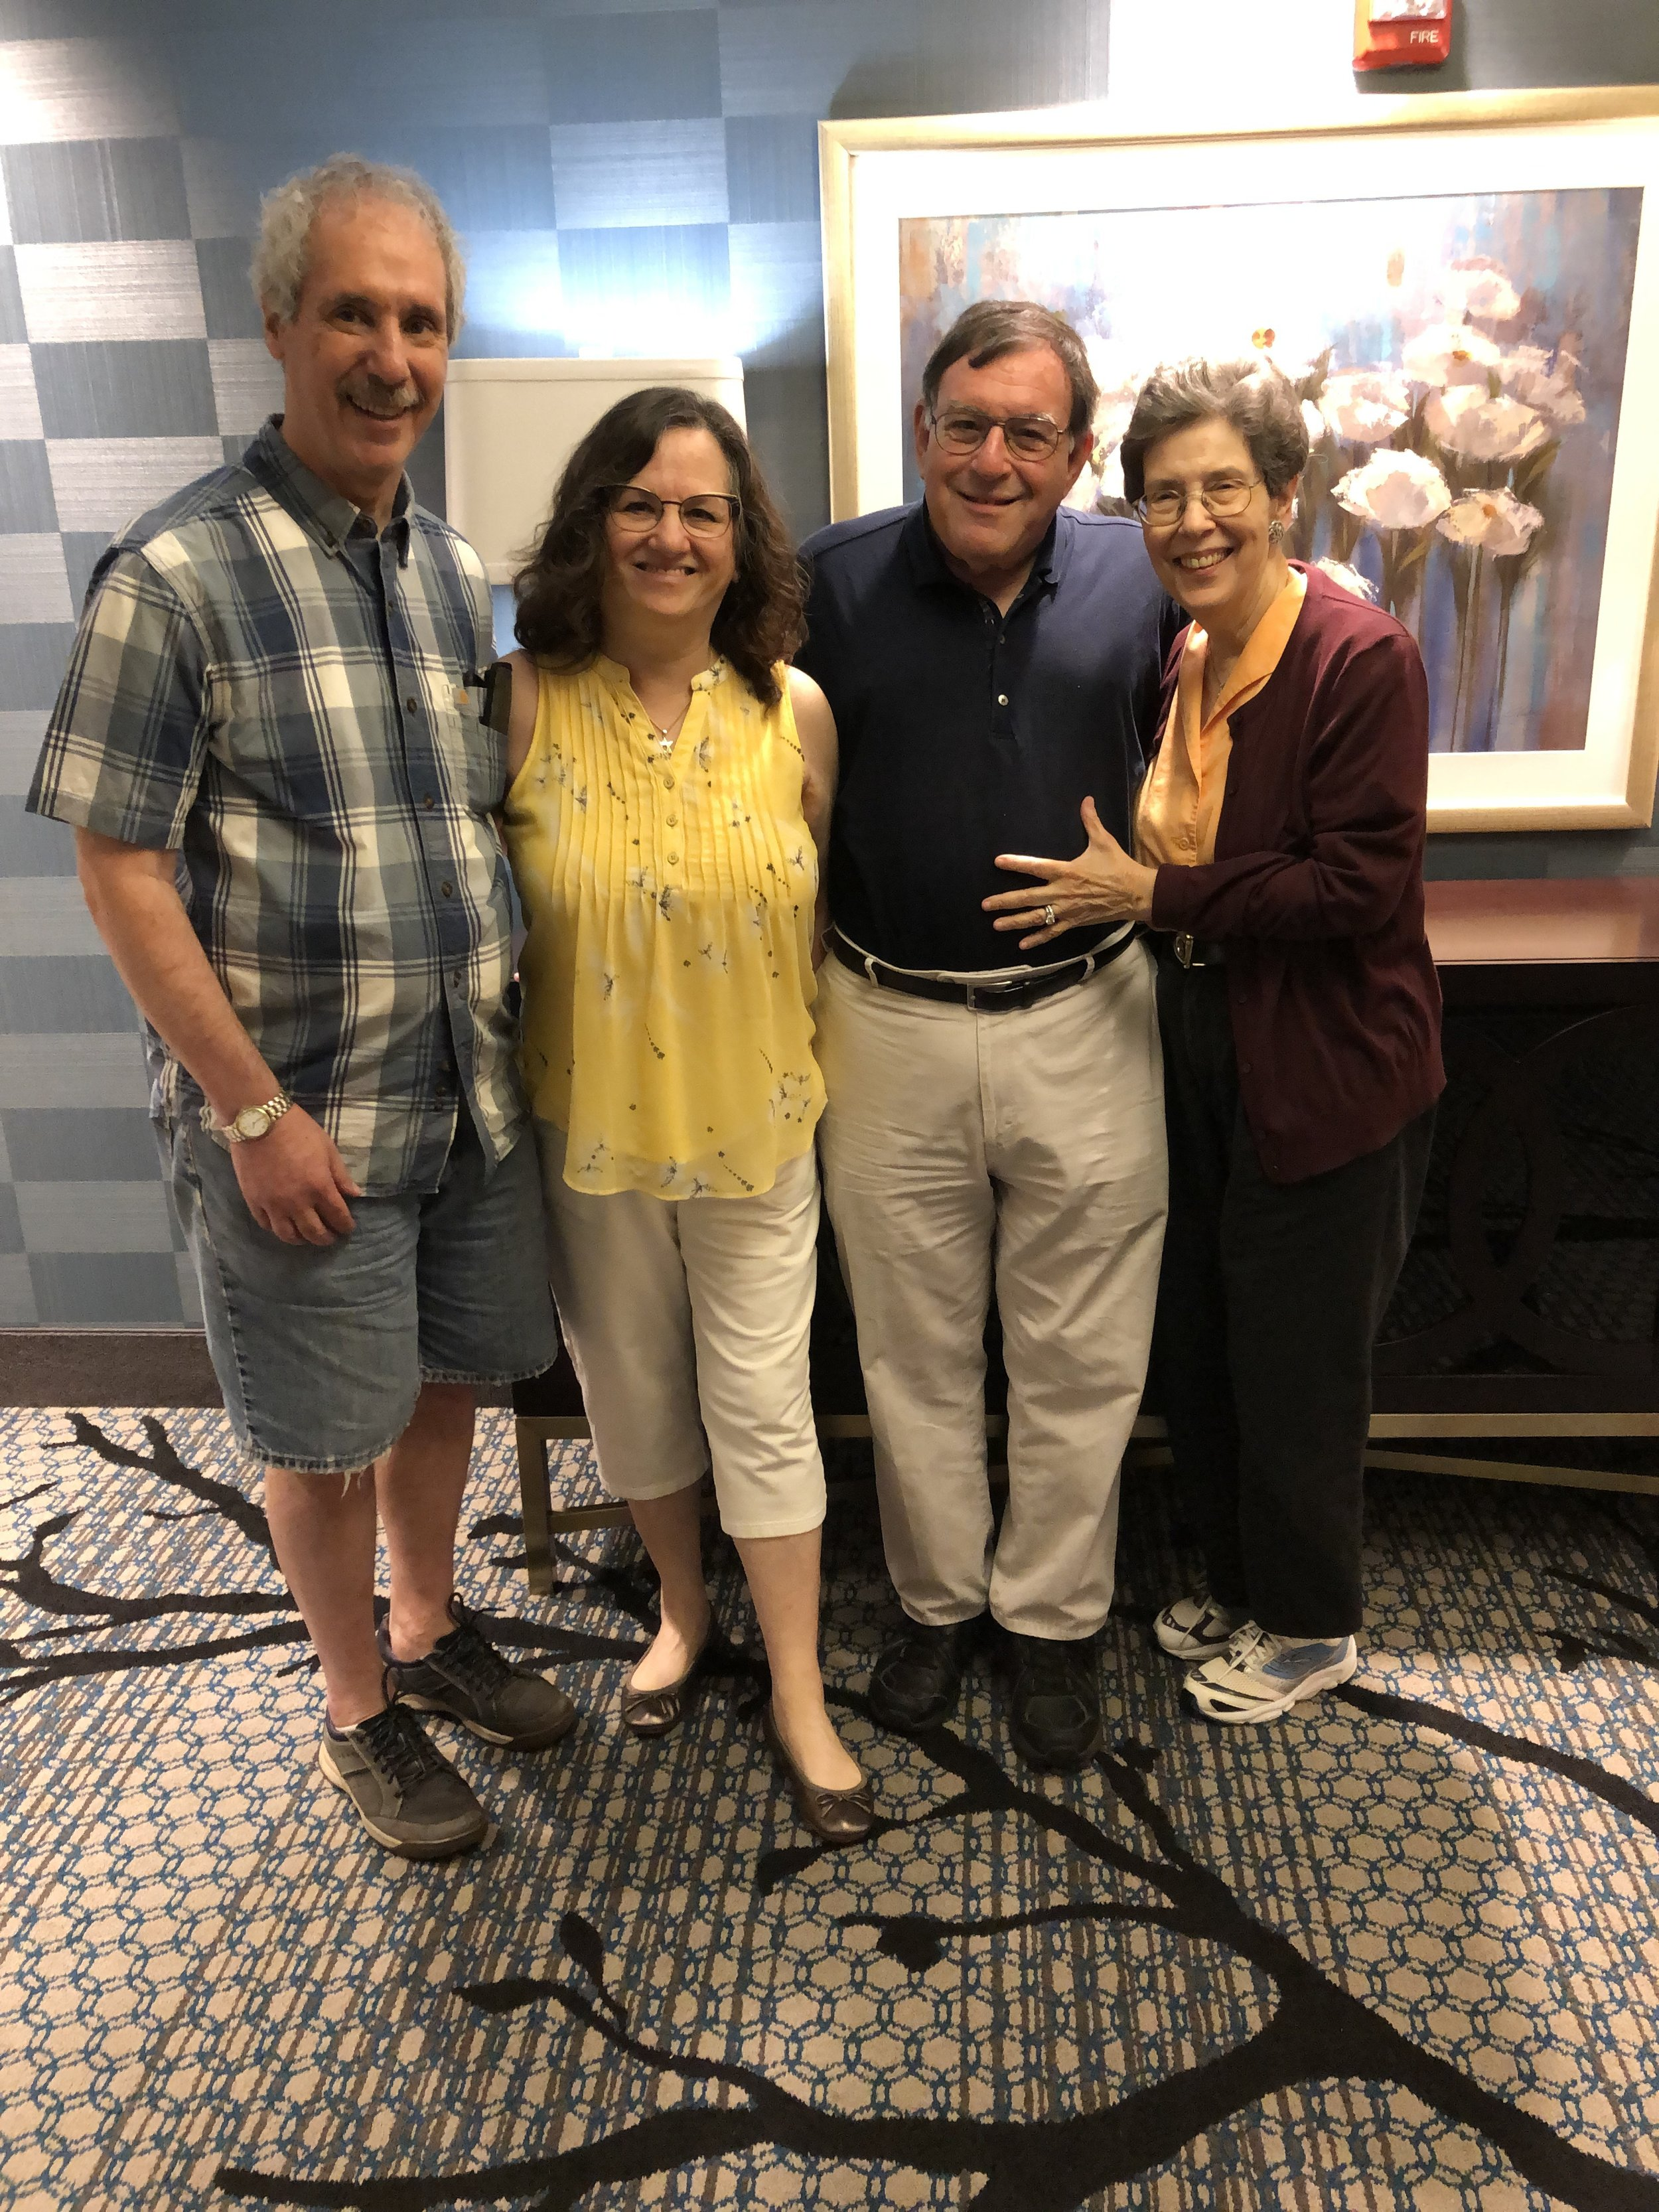 Morning after Ian's bar mitzvah in Charlotte, North Carolina. Arnee Cohen and Sharon Mark Cohen with Ian's'maternal grandparents—Ken Hoffman and Linda Neidich Hoffman. August 25, 2019